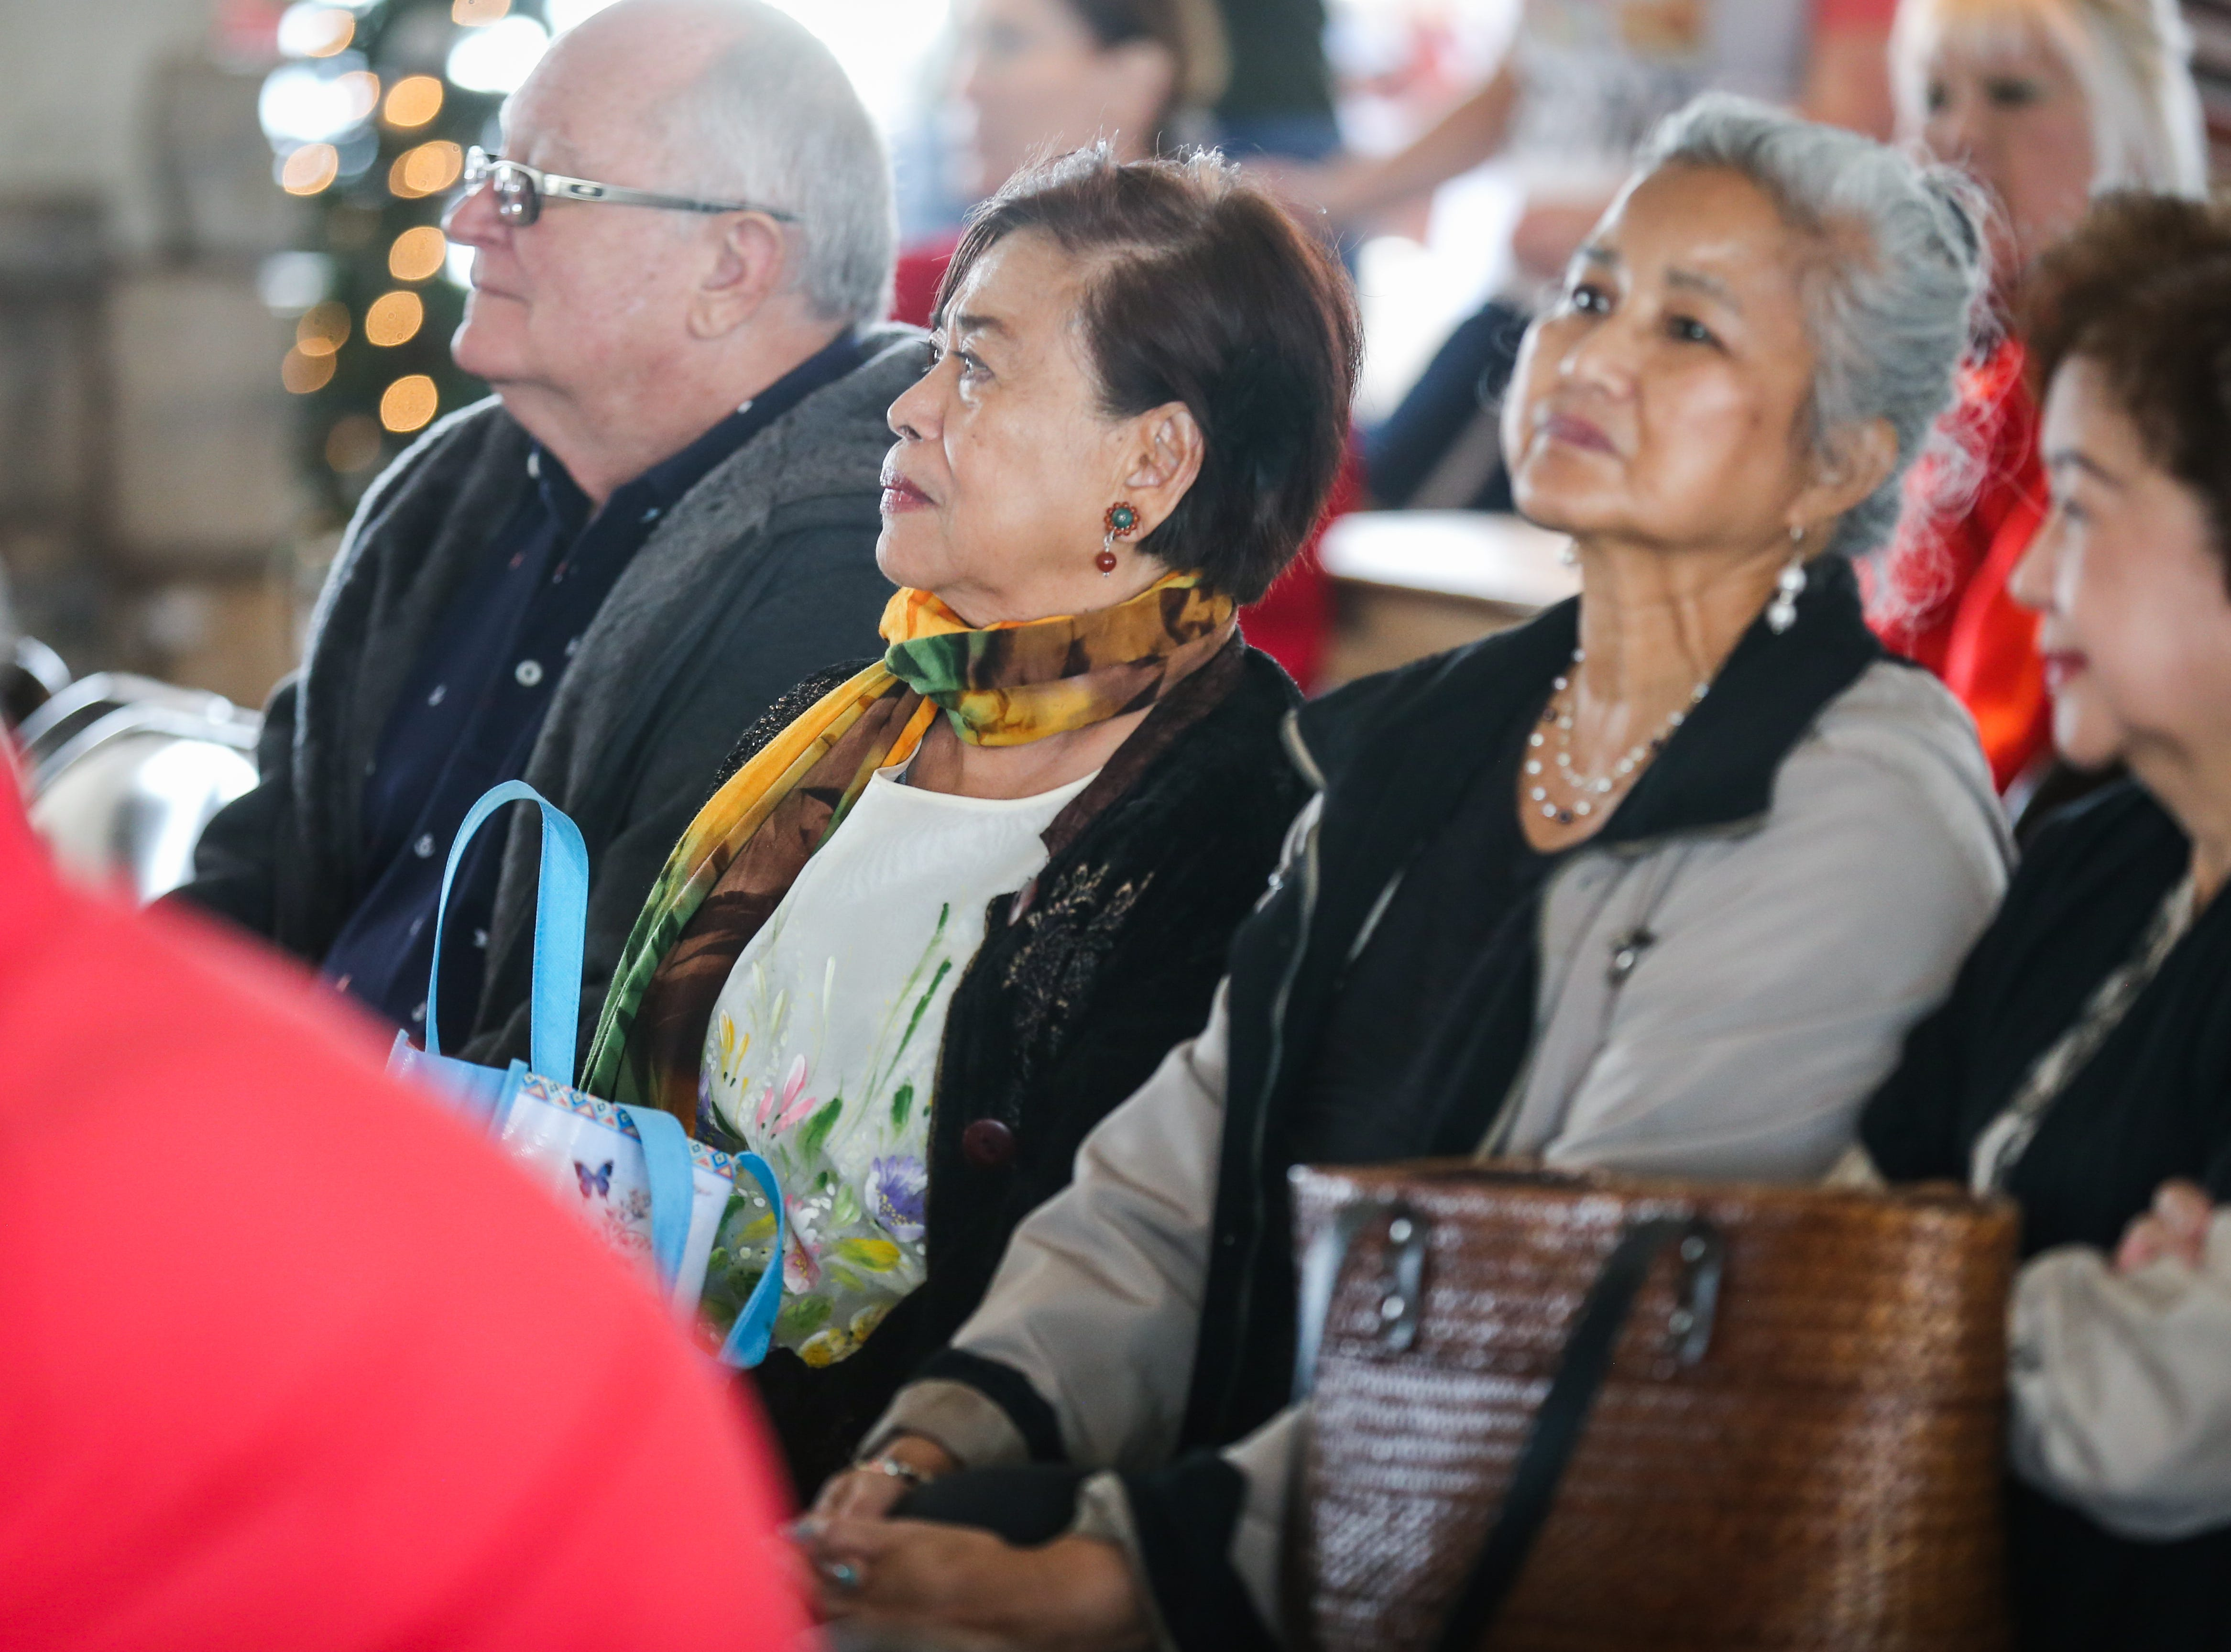 Attendees fill the sits for the Tinikling dance during the Asian Bazaar Saturday, Oct. 20, 2018, at El Paseo de Santa Angela.